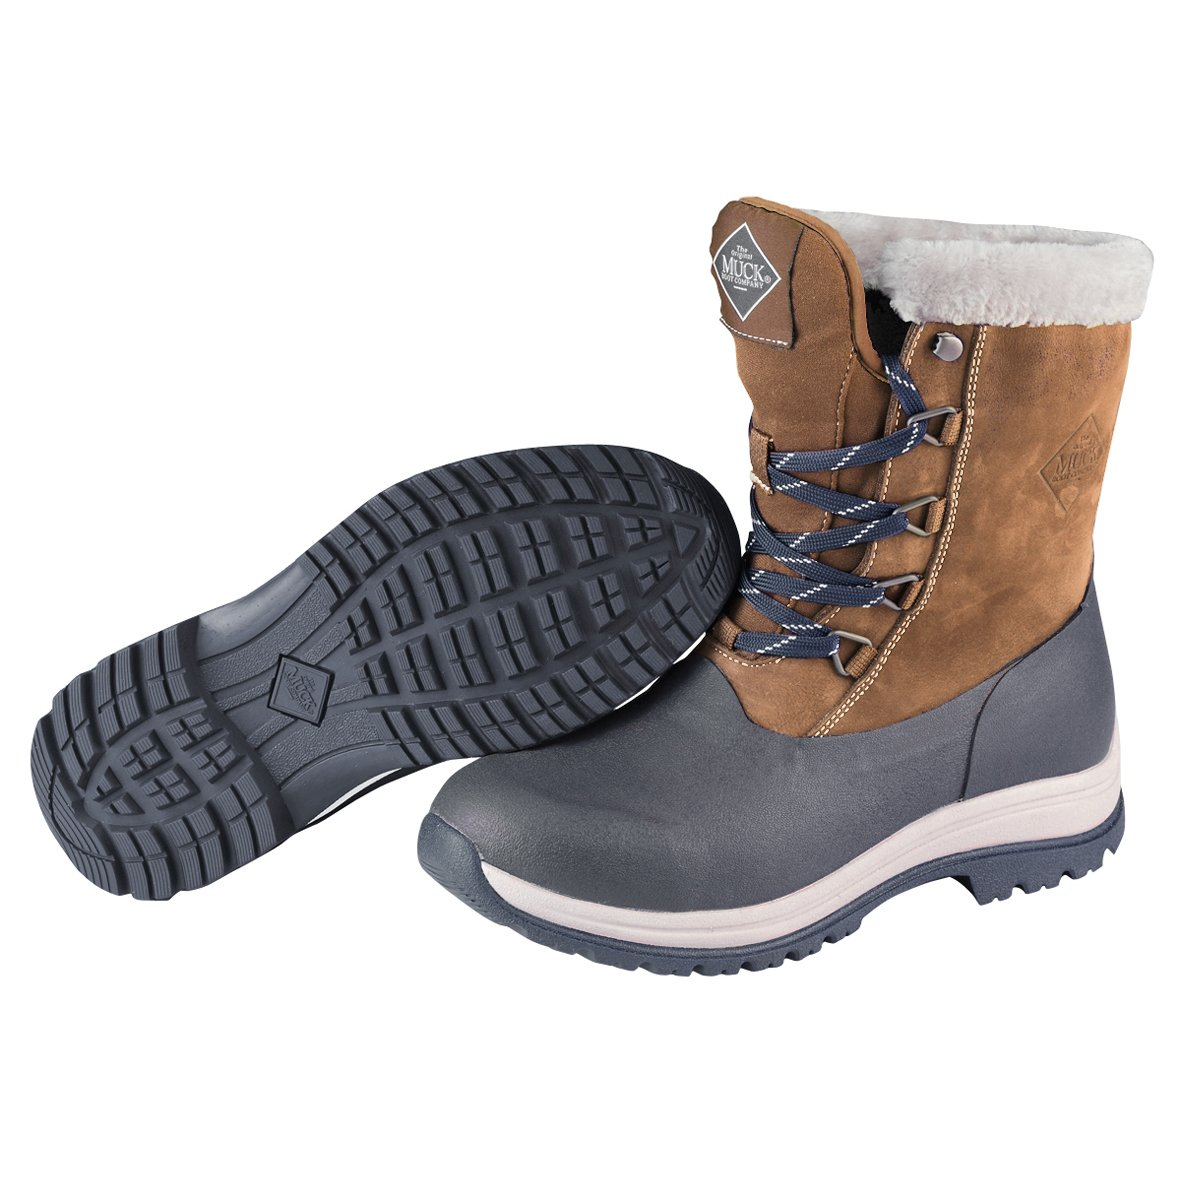 Muck Arctic Après Mid-Height Lace-up Rubber Women's Winter Boots B01GK94HEE 10 B(M) US|Otter, Navy/Fog